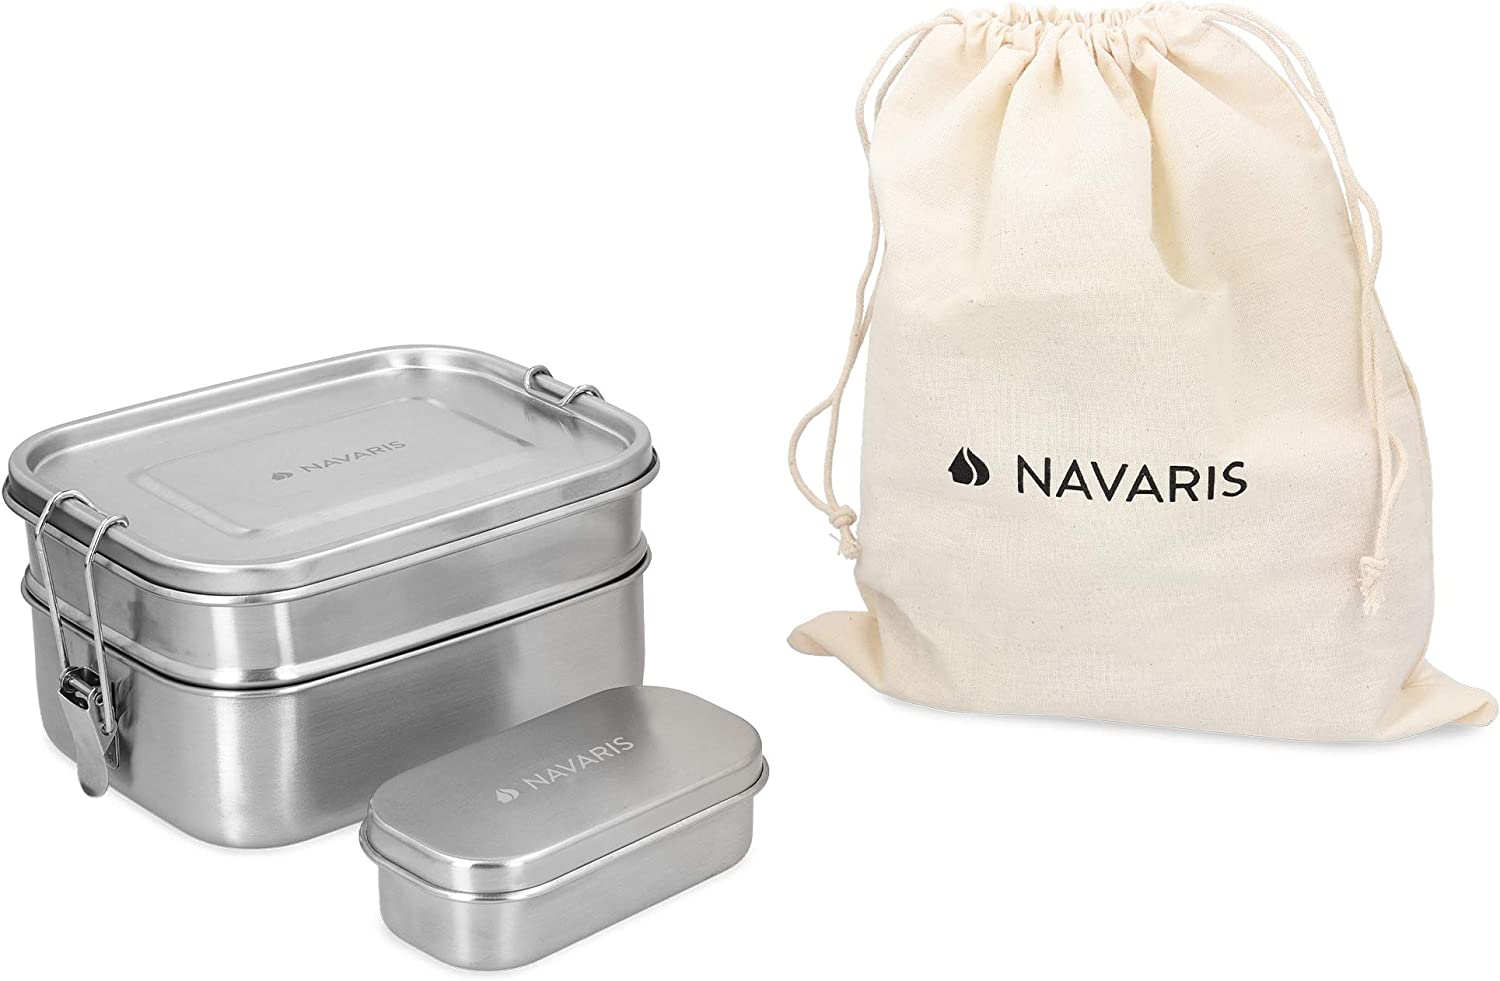 Navaris Fiambrera de Acero Inoxidable para Comida - 3X Envase hermético en 3 tamaños - Recipiente Rectangular de 1400 ML - Lunch Box de Metal